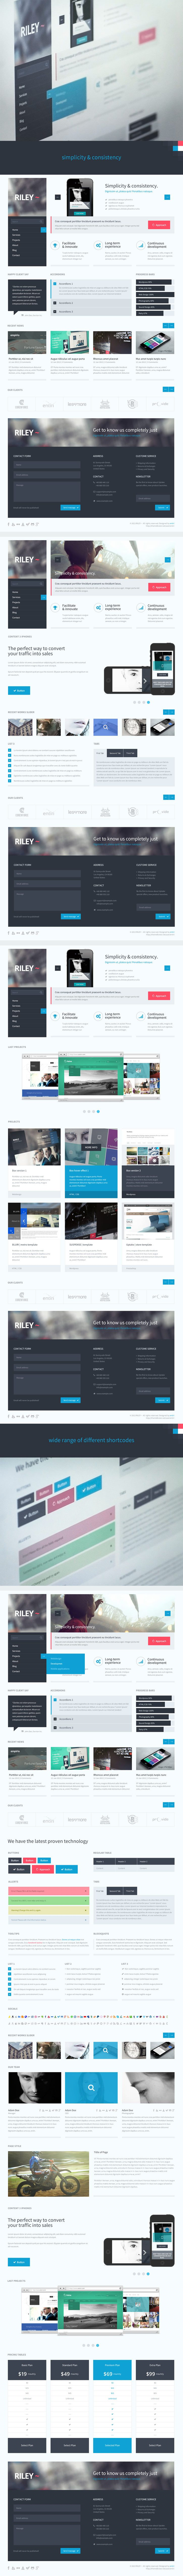 Riley | Unique PSD template - http://www.behance.net/gallery/Riley-Unique-PSD-template/8106167?utm_source=Triggermail_medium=email_campaign=Net%20Project%20Published